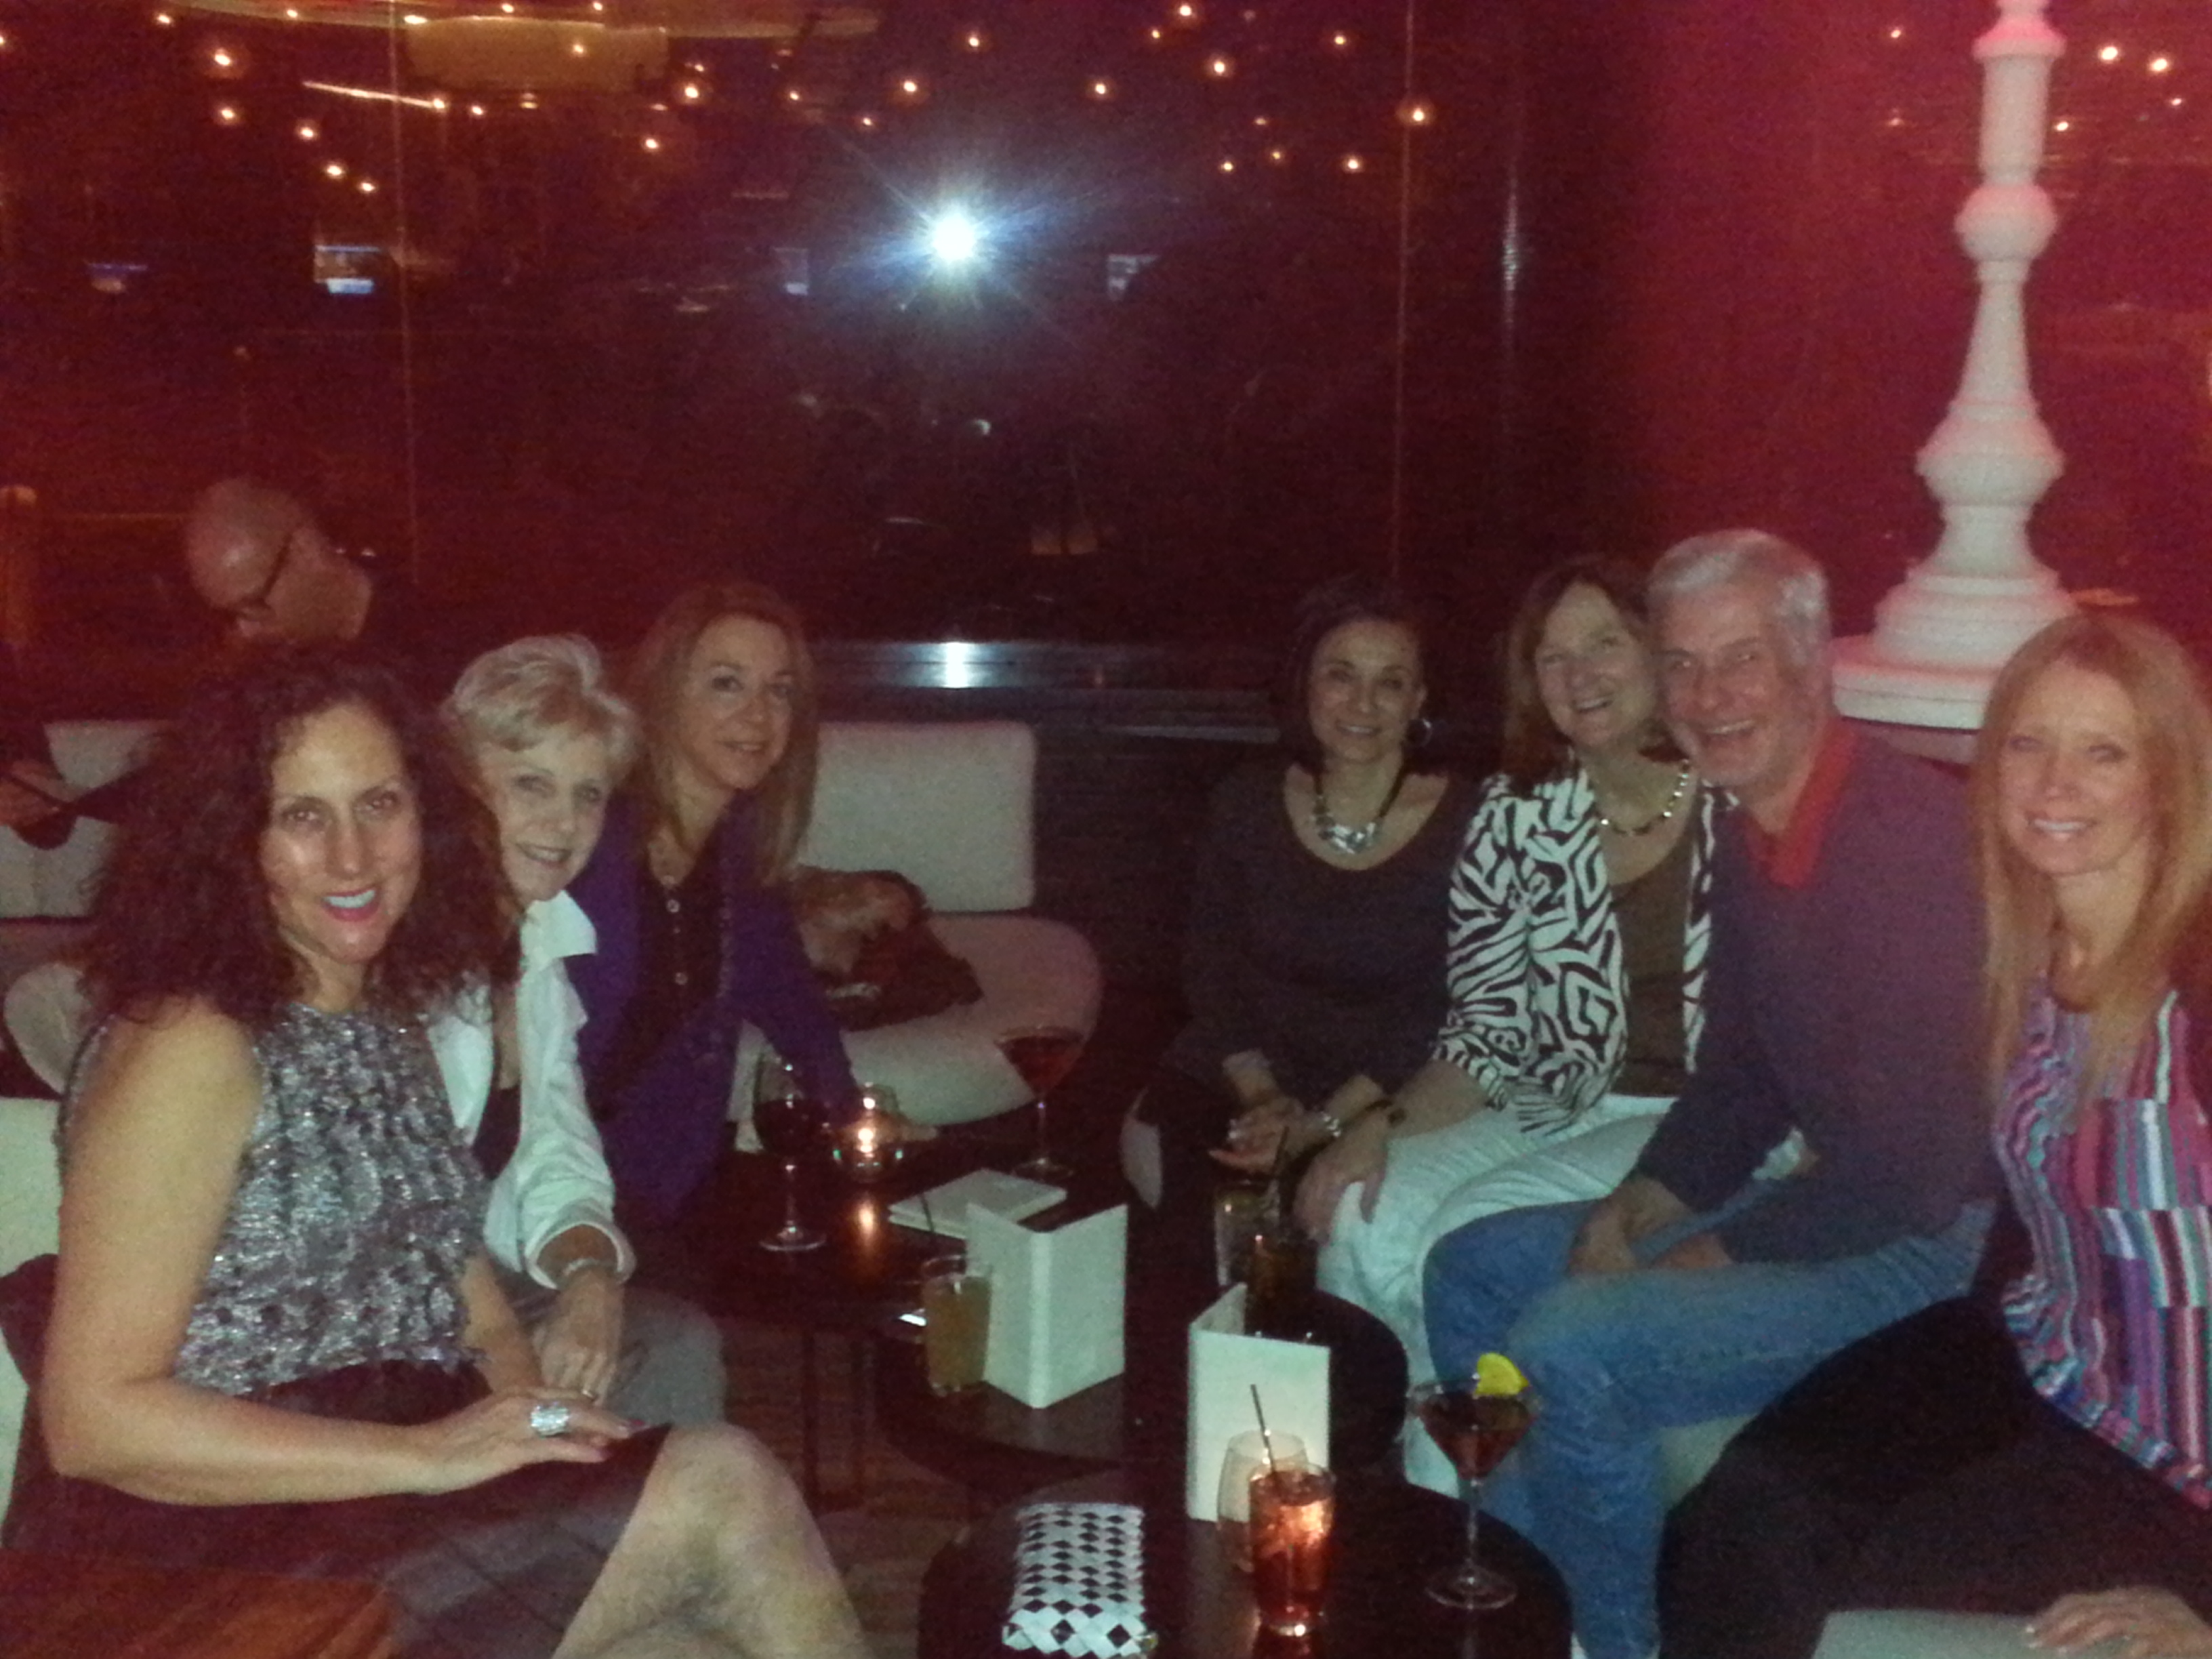 Night out at The Cosmopolitan Hotel & Casino with our fellow stagers!